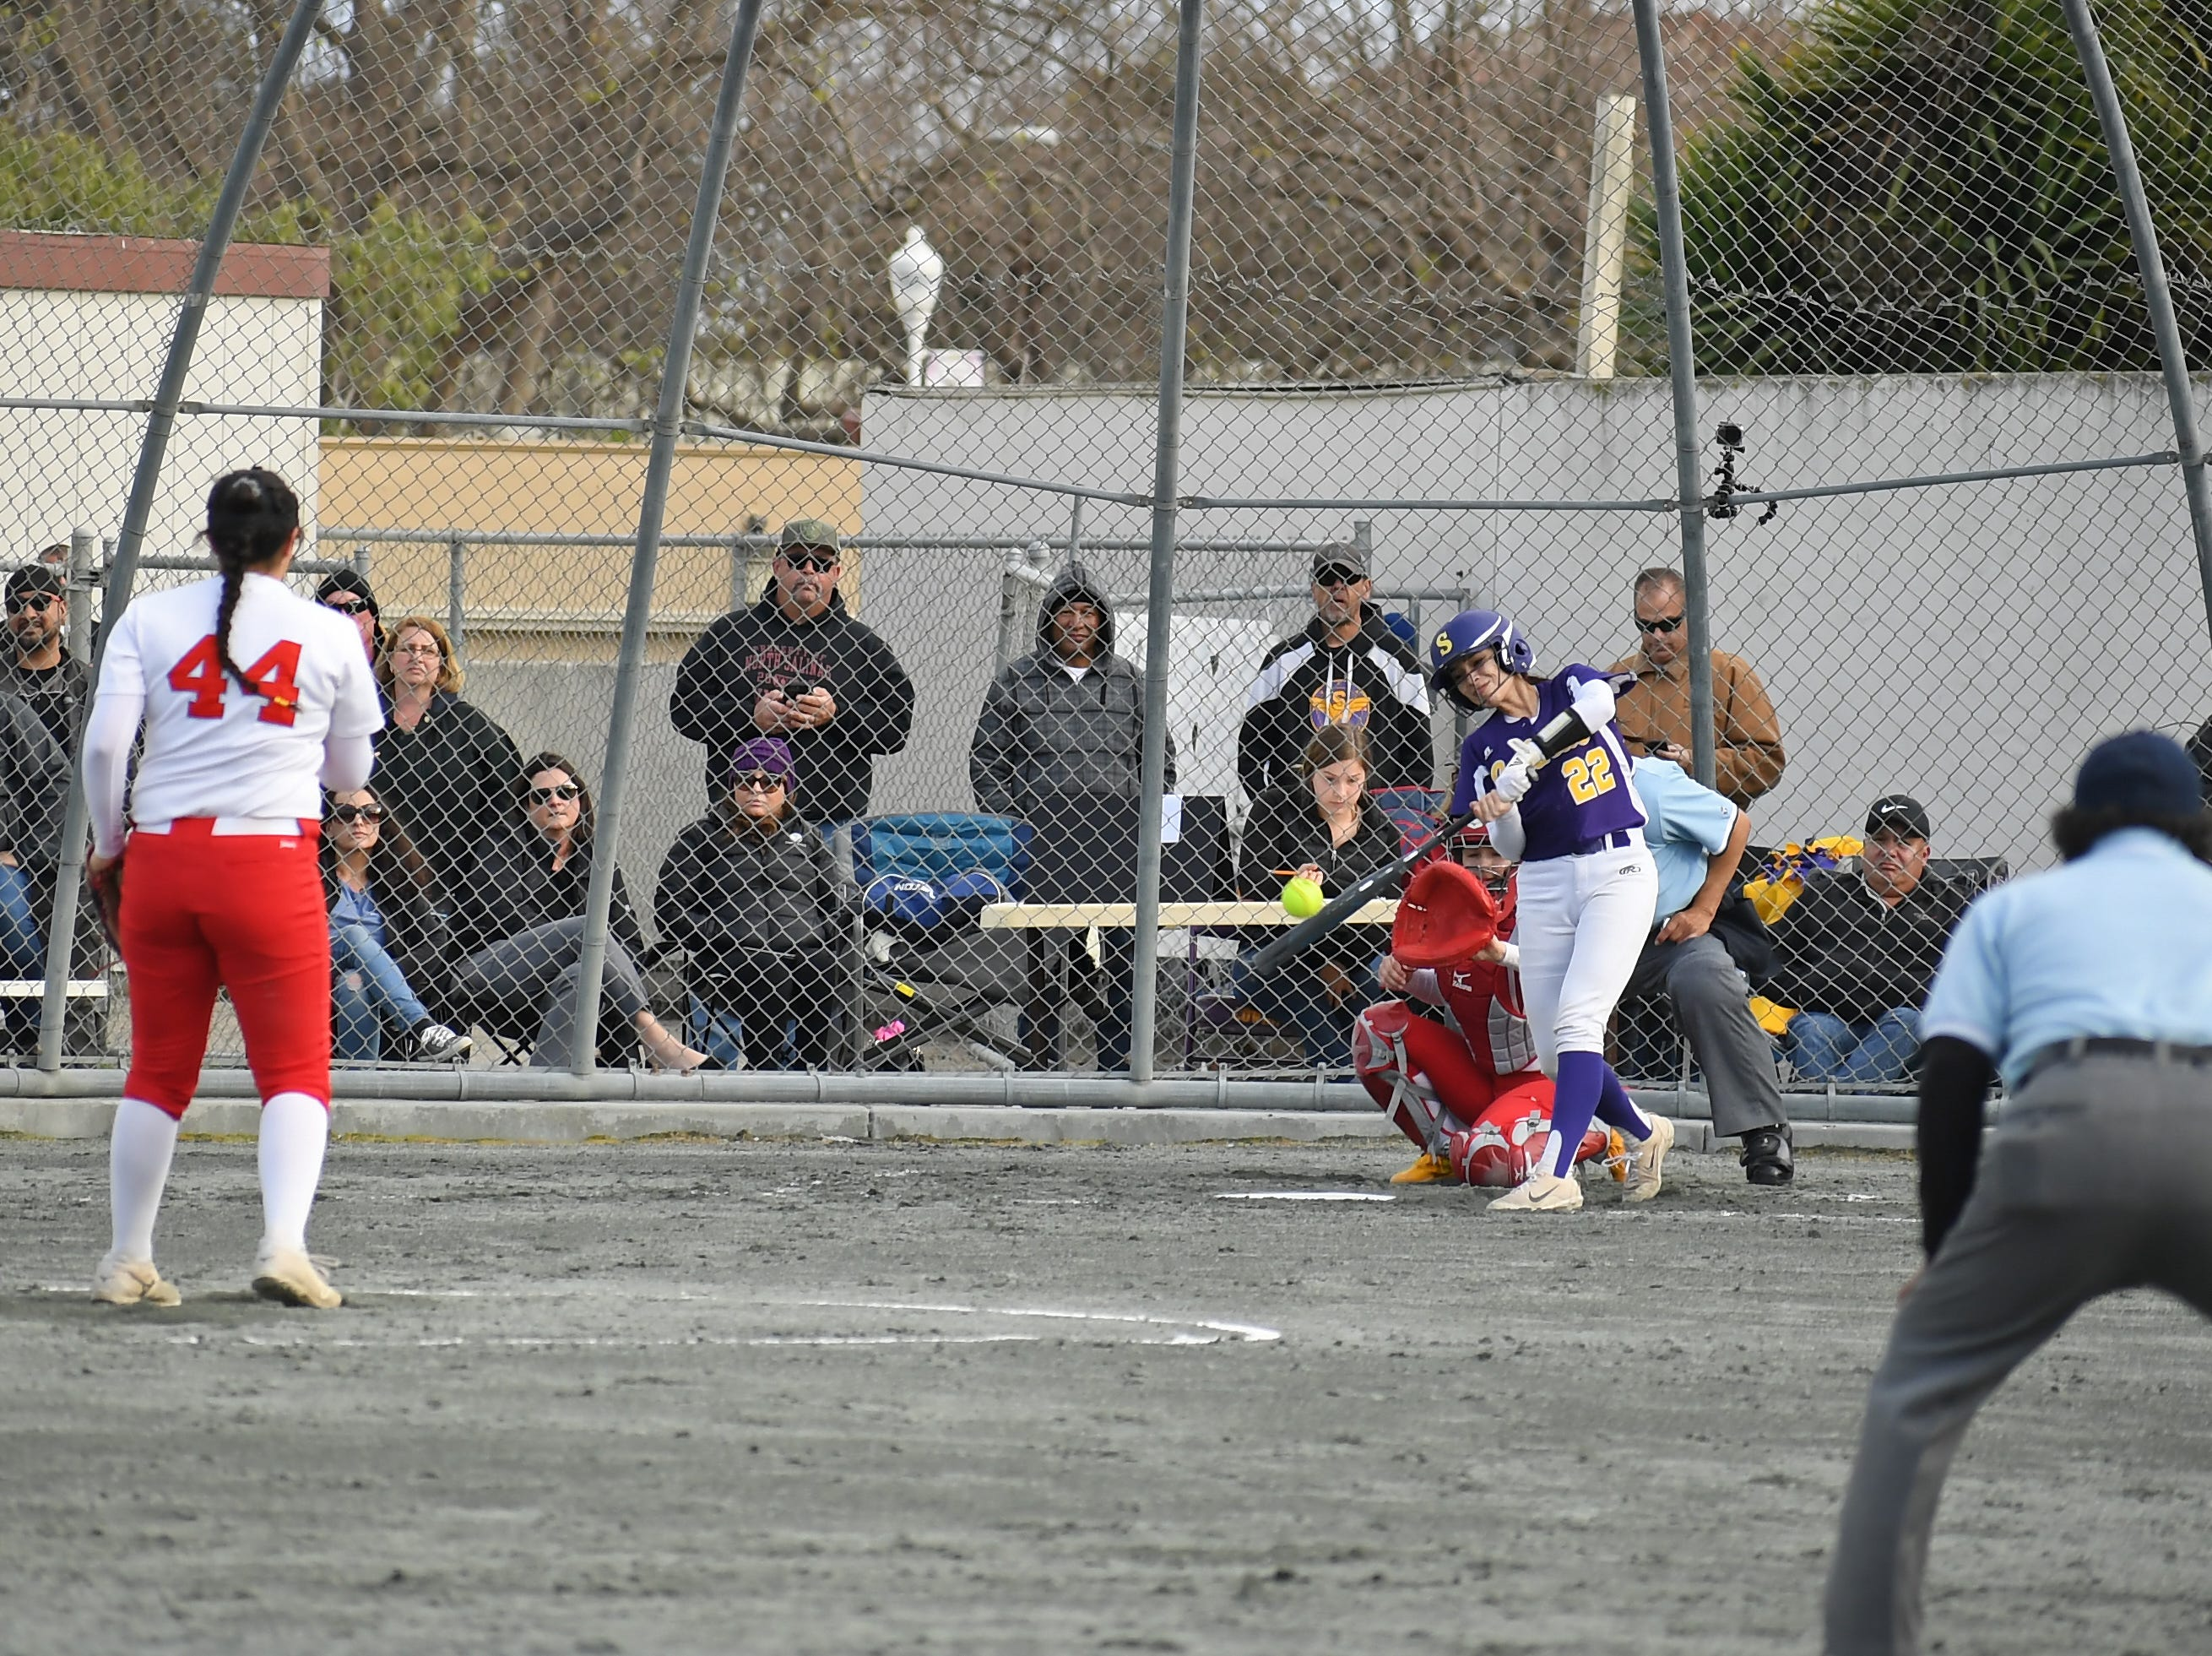 Action from Wednesday's game between the Cowboys and the Vikings.